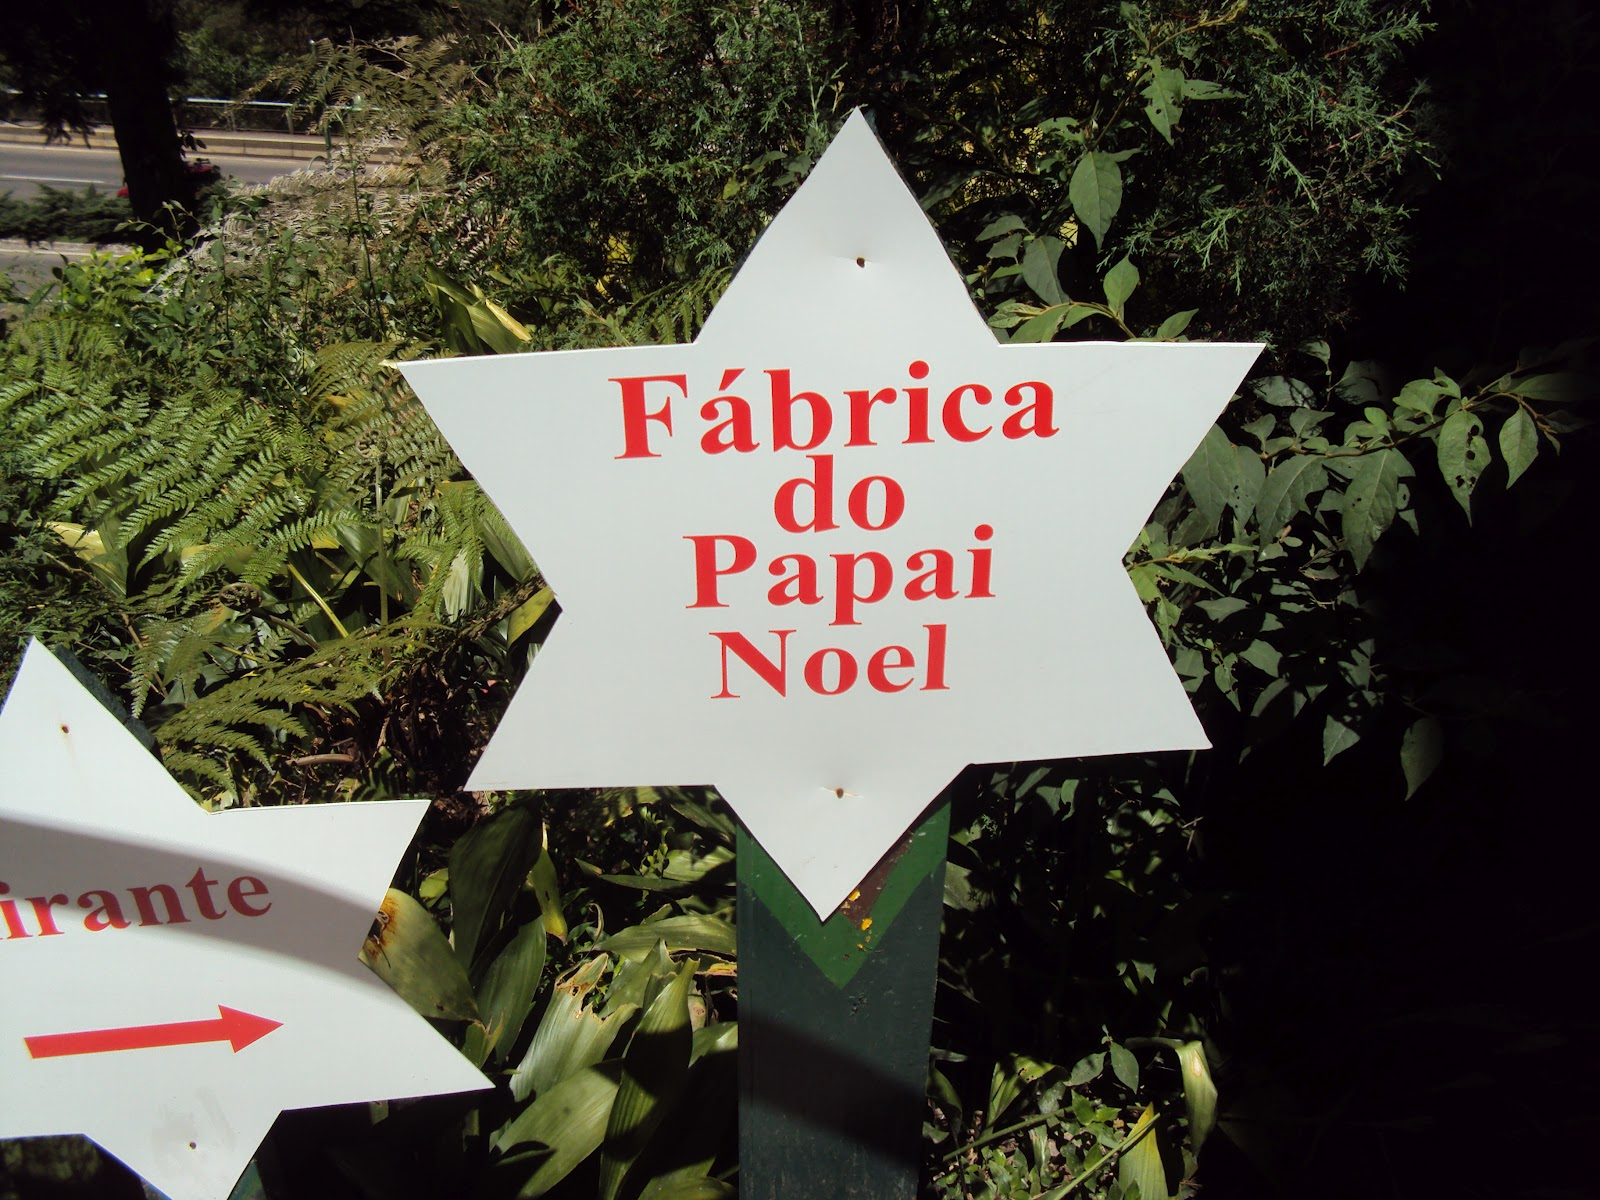 Aldeia do Papai Noel